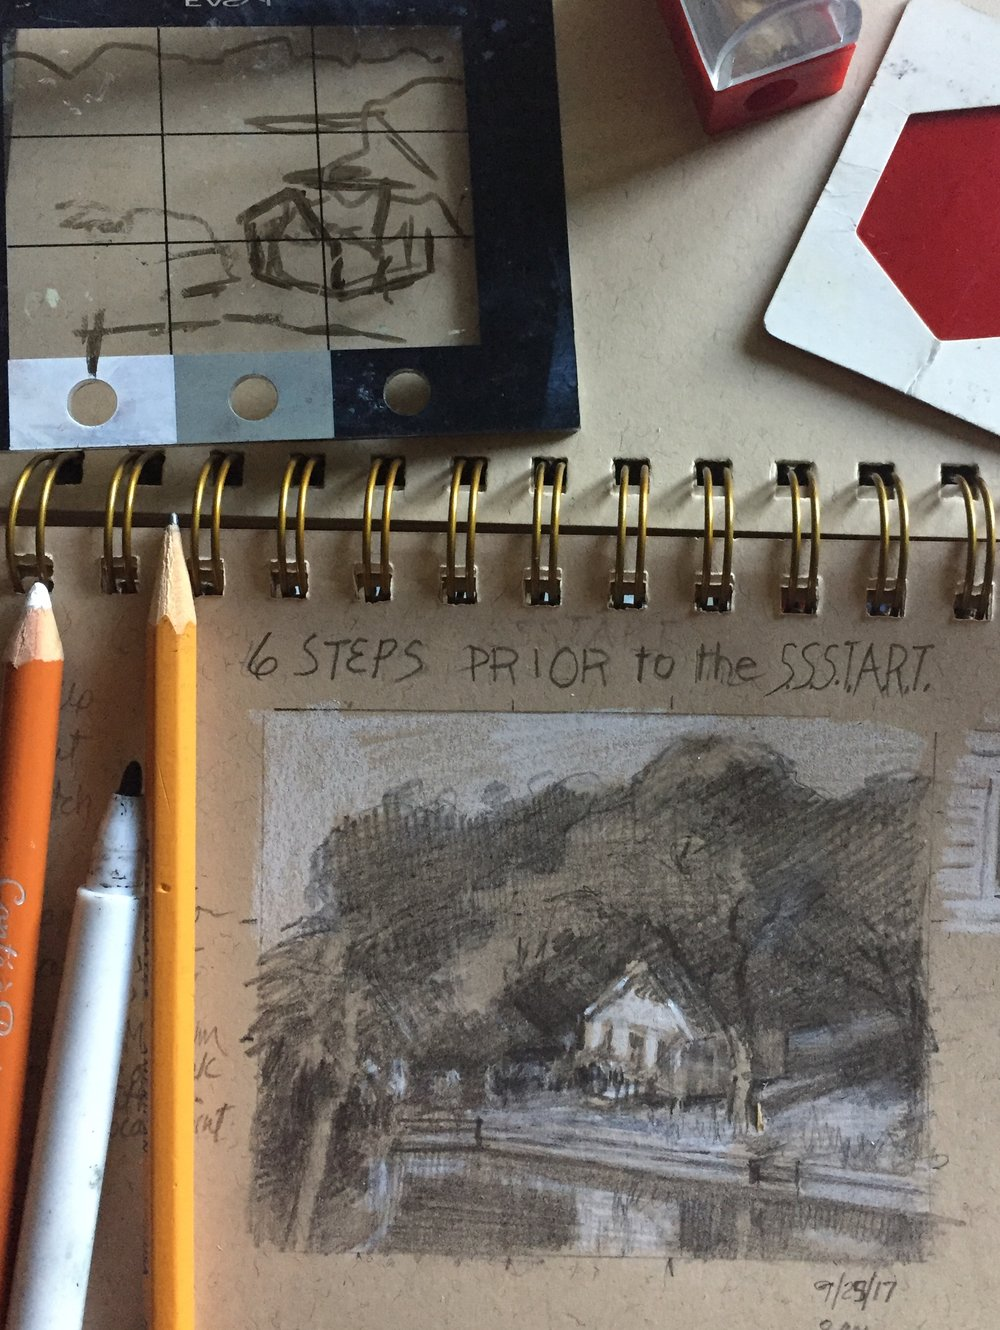 Artists...In the Color & Energy series of workshops, you will learn  how to do small sketches first (& how to do them quicker), 6 Steps before you SSStart. Perfect for beginner to intermediate painters yet advanced painters will benefit as well.